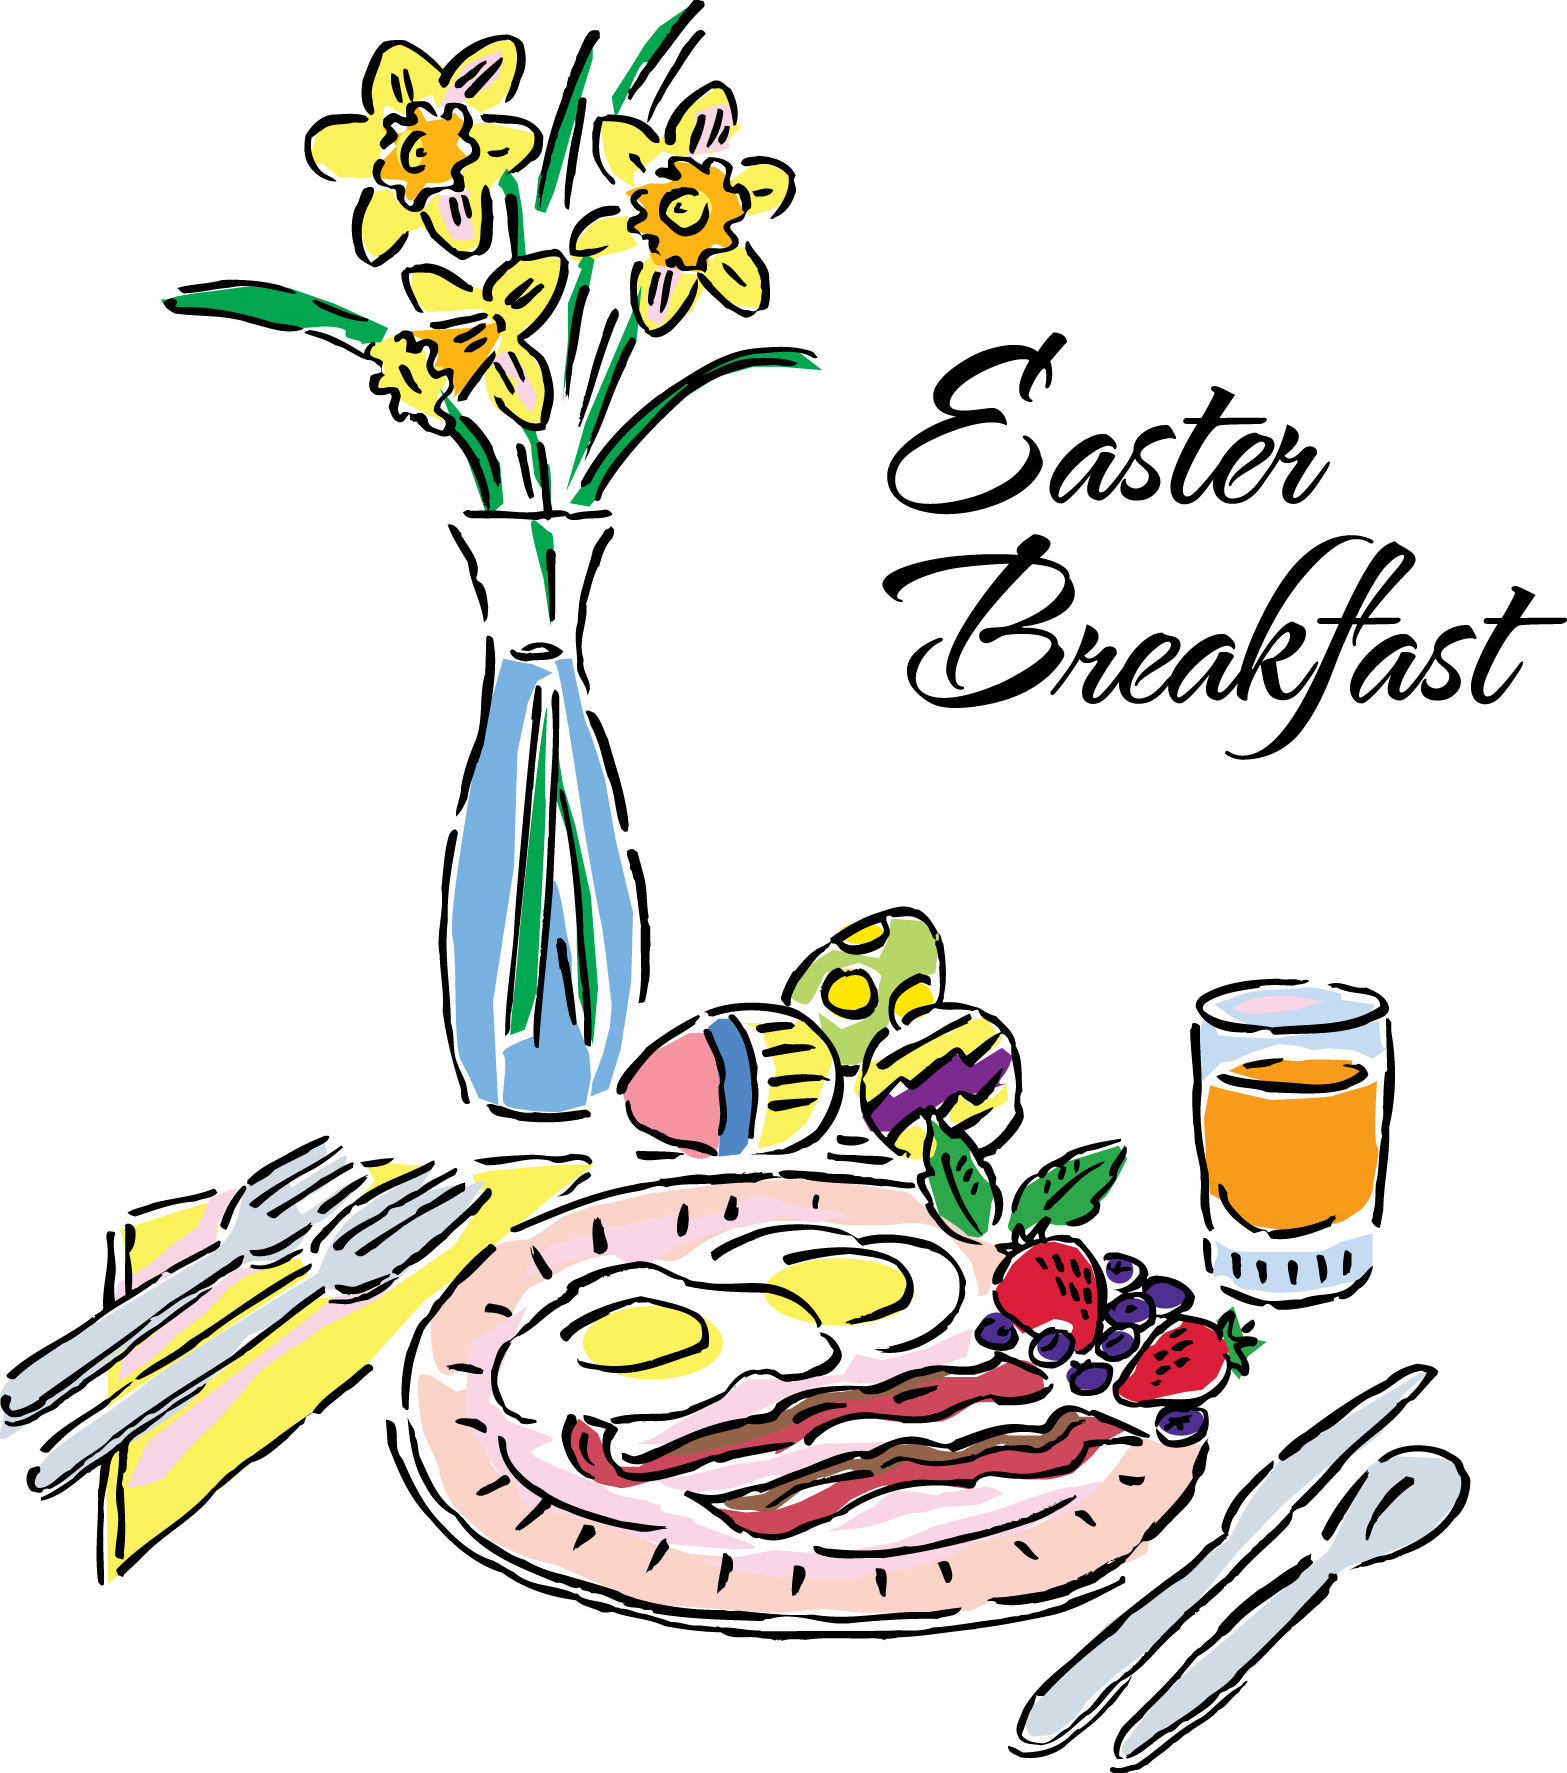 Breakfast clipart easter morning And Clipart Vector Free Favorite